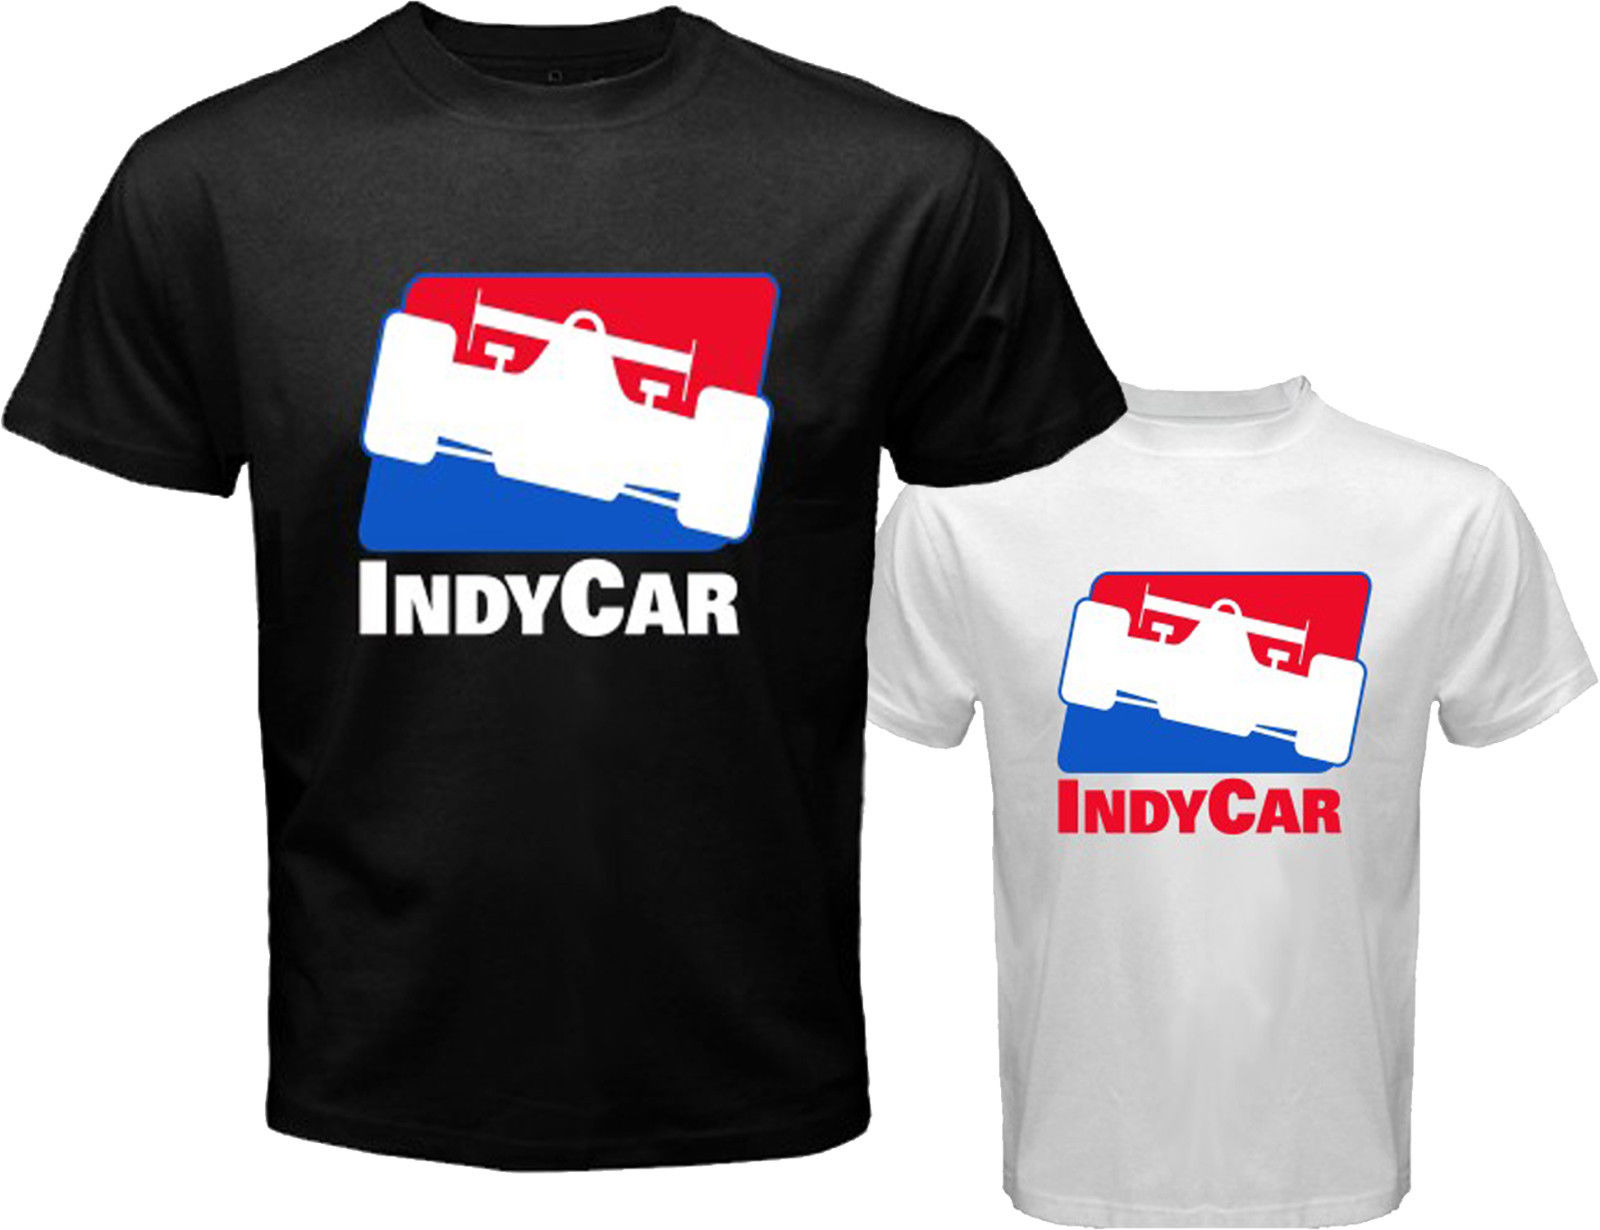 Shirt design contest 2017